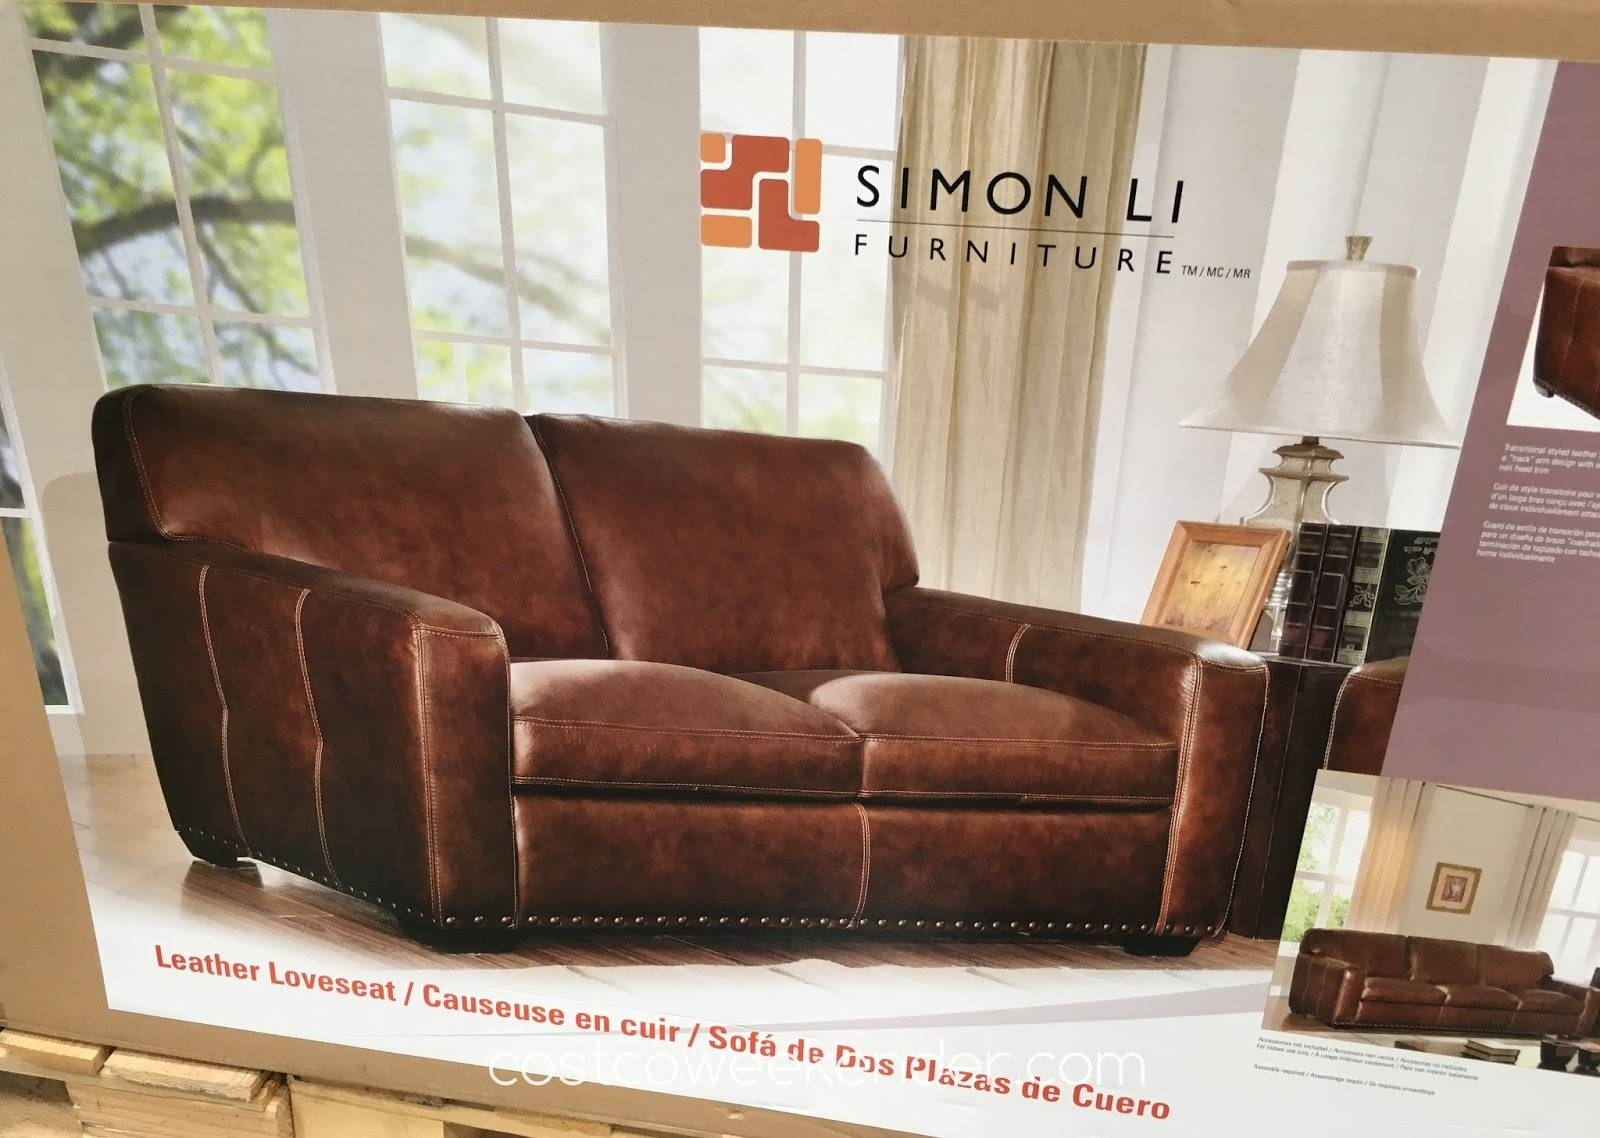 Simon Li Leather Loveseat | Costco Weekender Pertaining To Simon Li Loveseats (View 9 of 15)